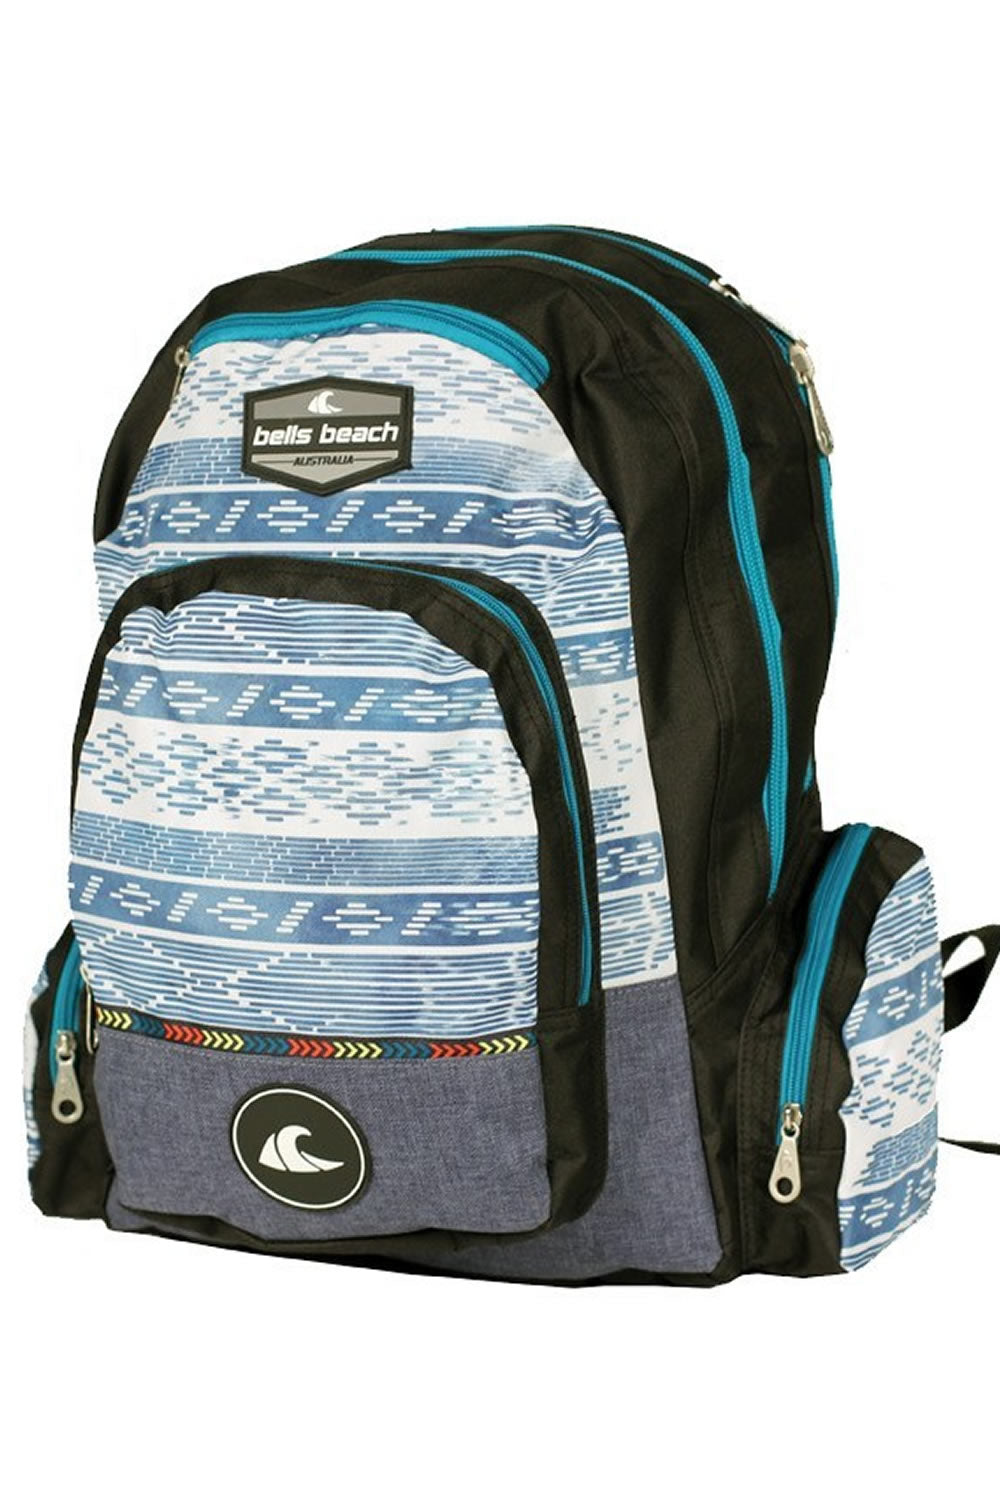 Bells Beach 35 Lt Backpack